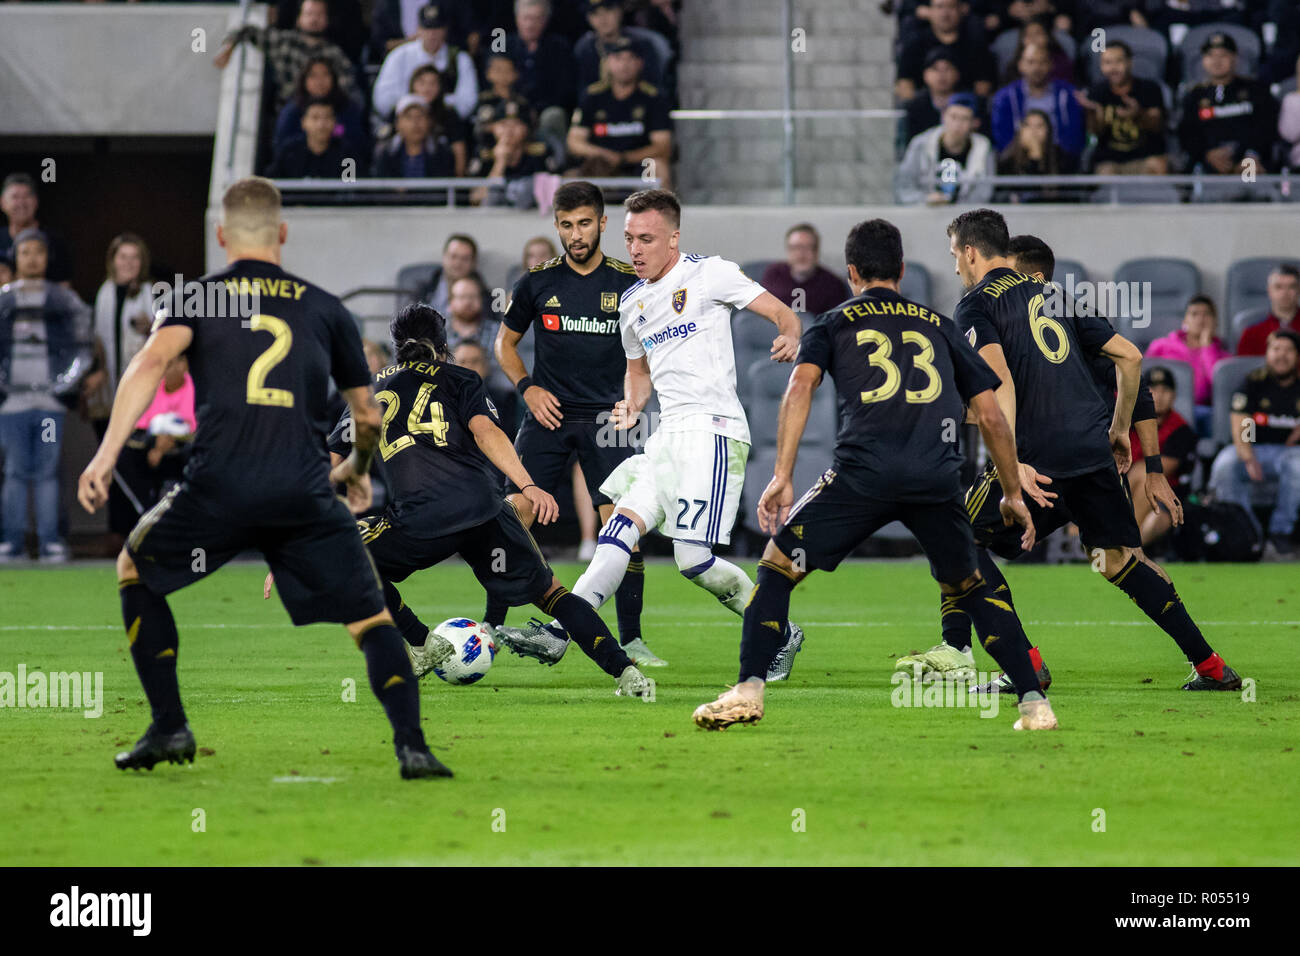 Los Angeles, USA. 1st November 2018. Corey Baird (27) takes on six LAFC players in the run up to RSL's game winning goal in the 69th minute. Credit: Ben Nichols/Alamy Live News - Stock Image